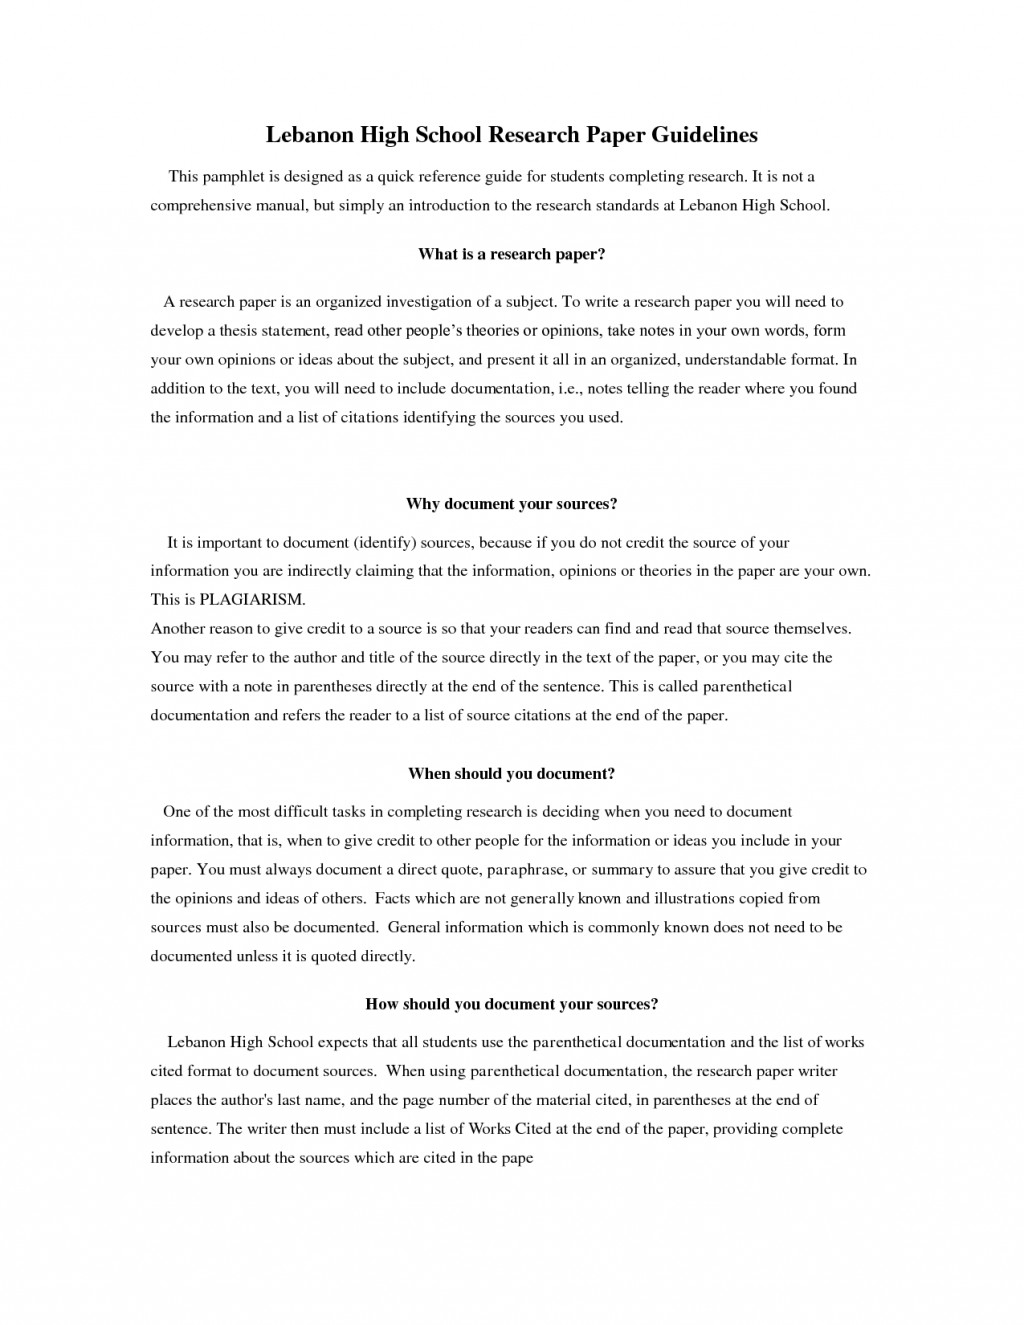 024 Research Paper Brilliant Ideas Of Effective Essay Tips About Good Topic For Nice Topics Papers High School Phenomenal Middle Questions Science Large